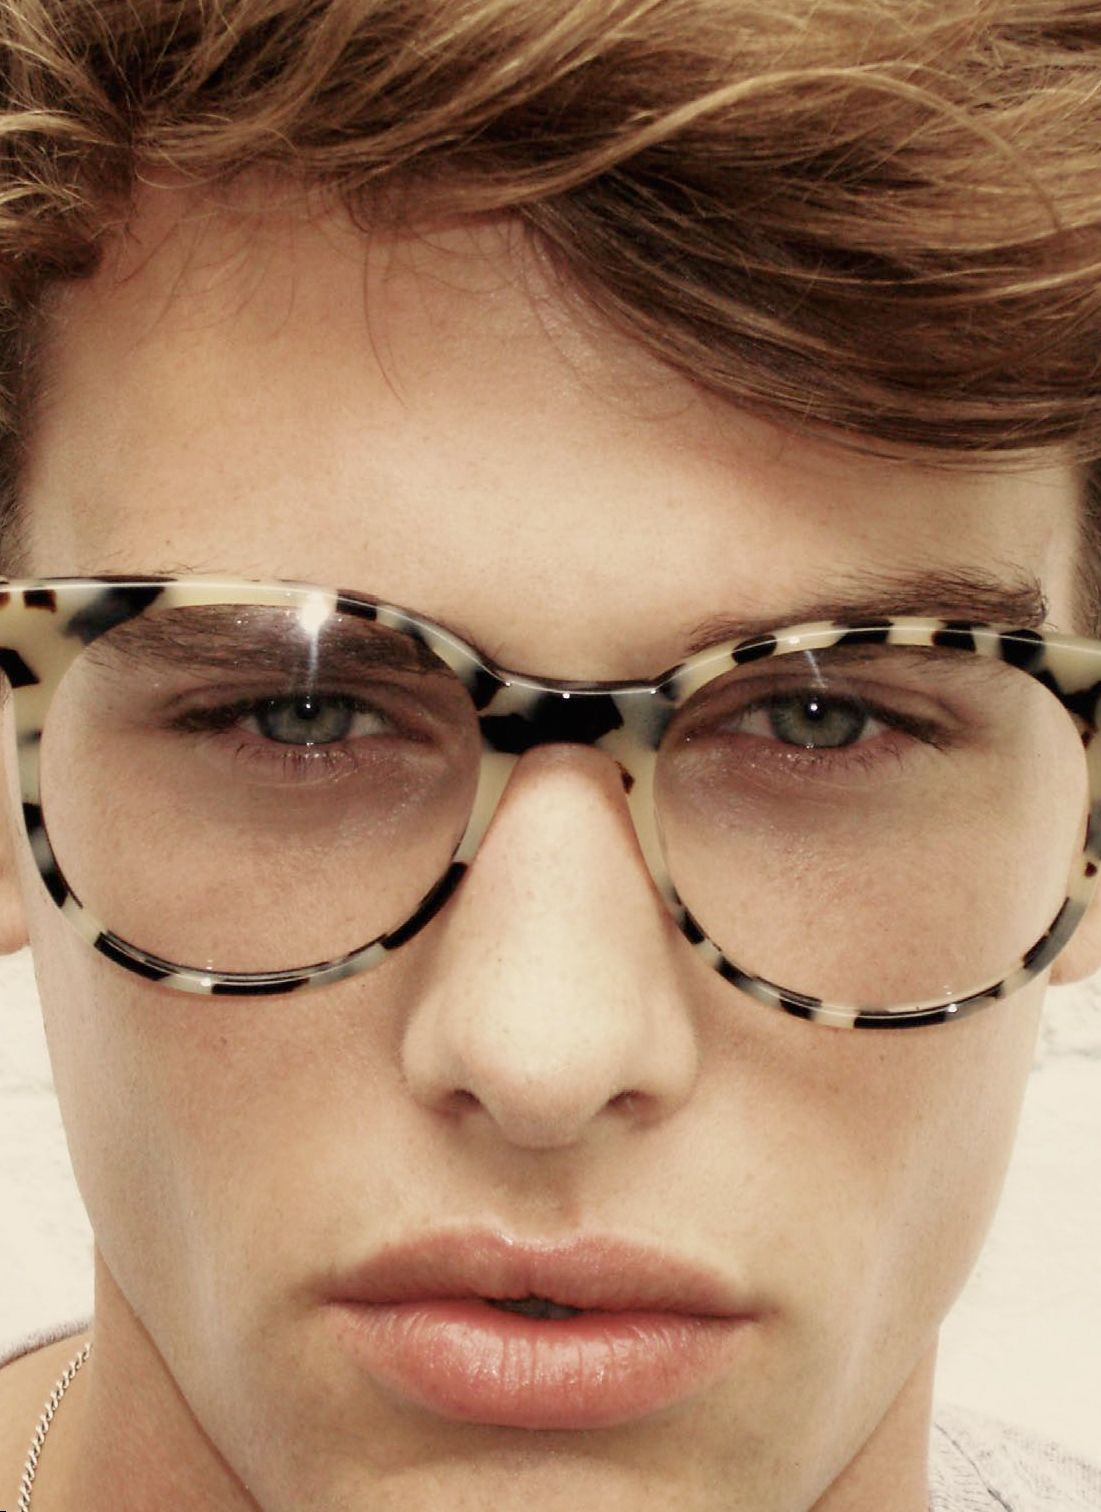 Pin by Neoma Spade on ThE LoOk (With images) Eye wear